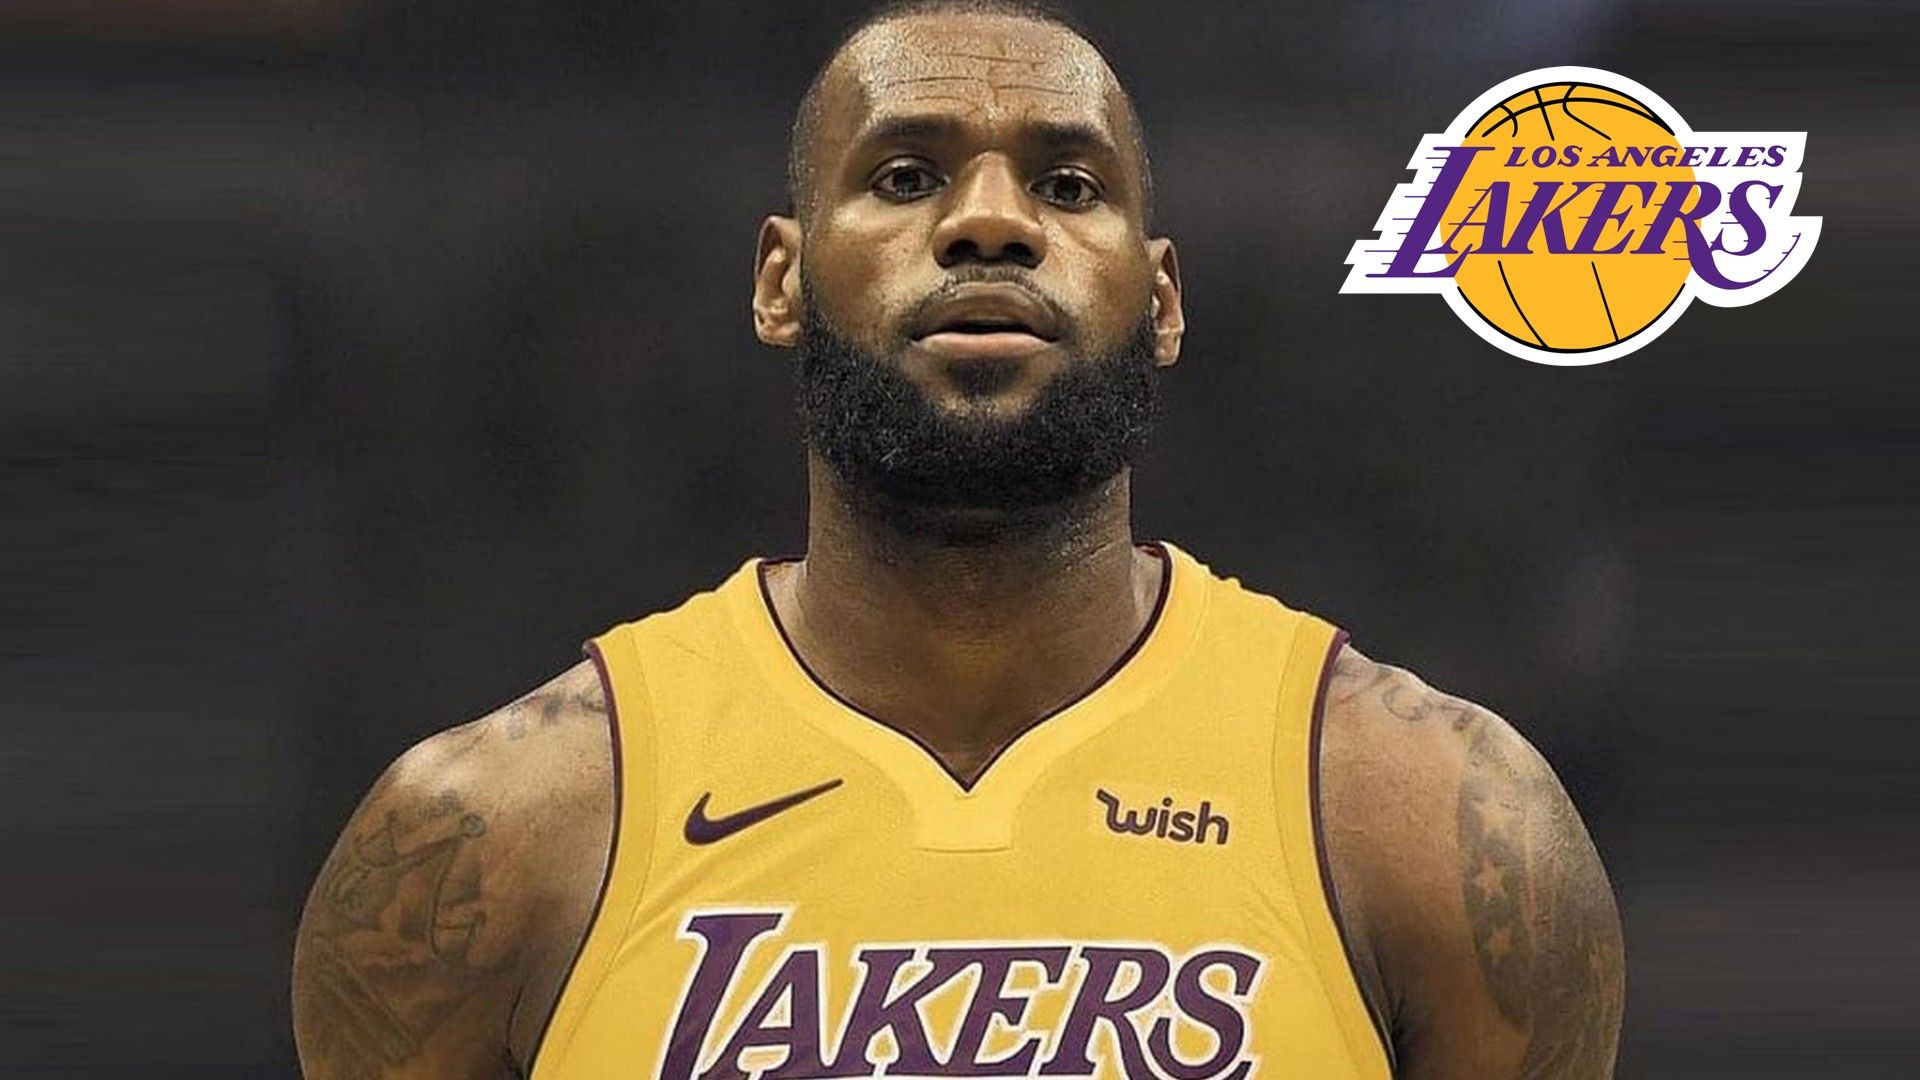 LeBron James Lakers Jersey Wallpaper is the perfect High